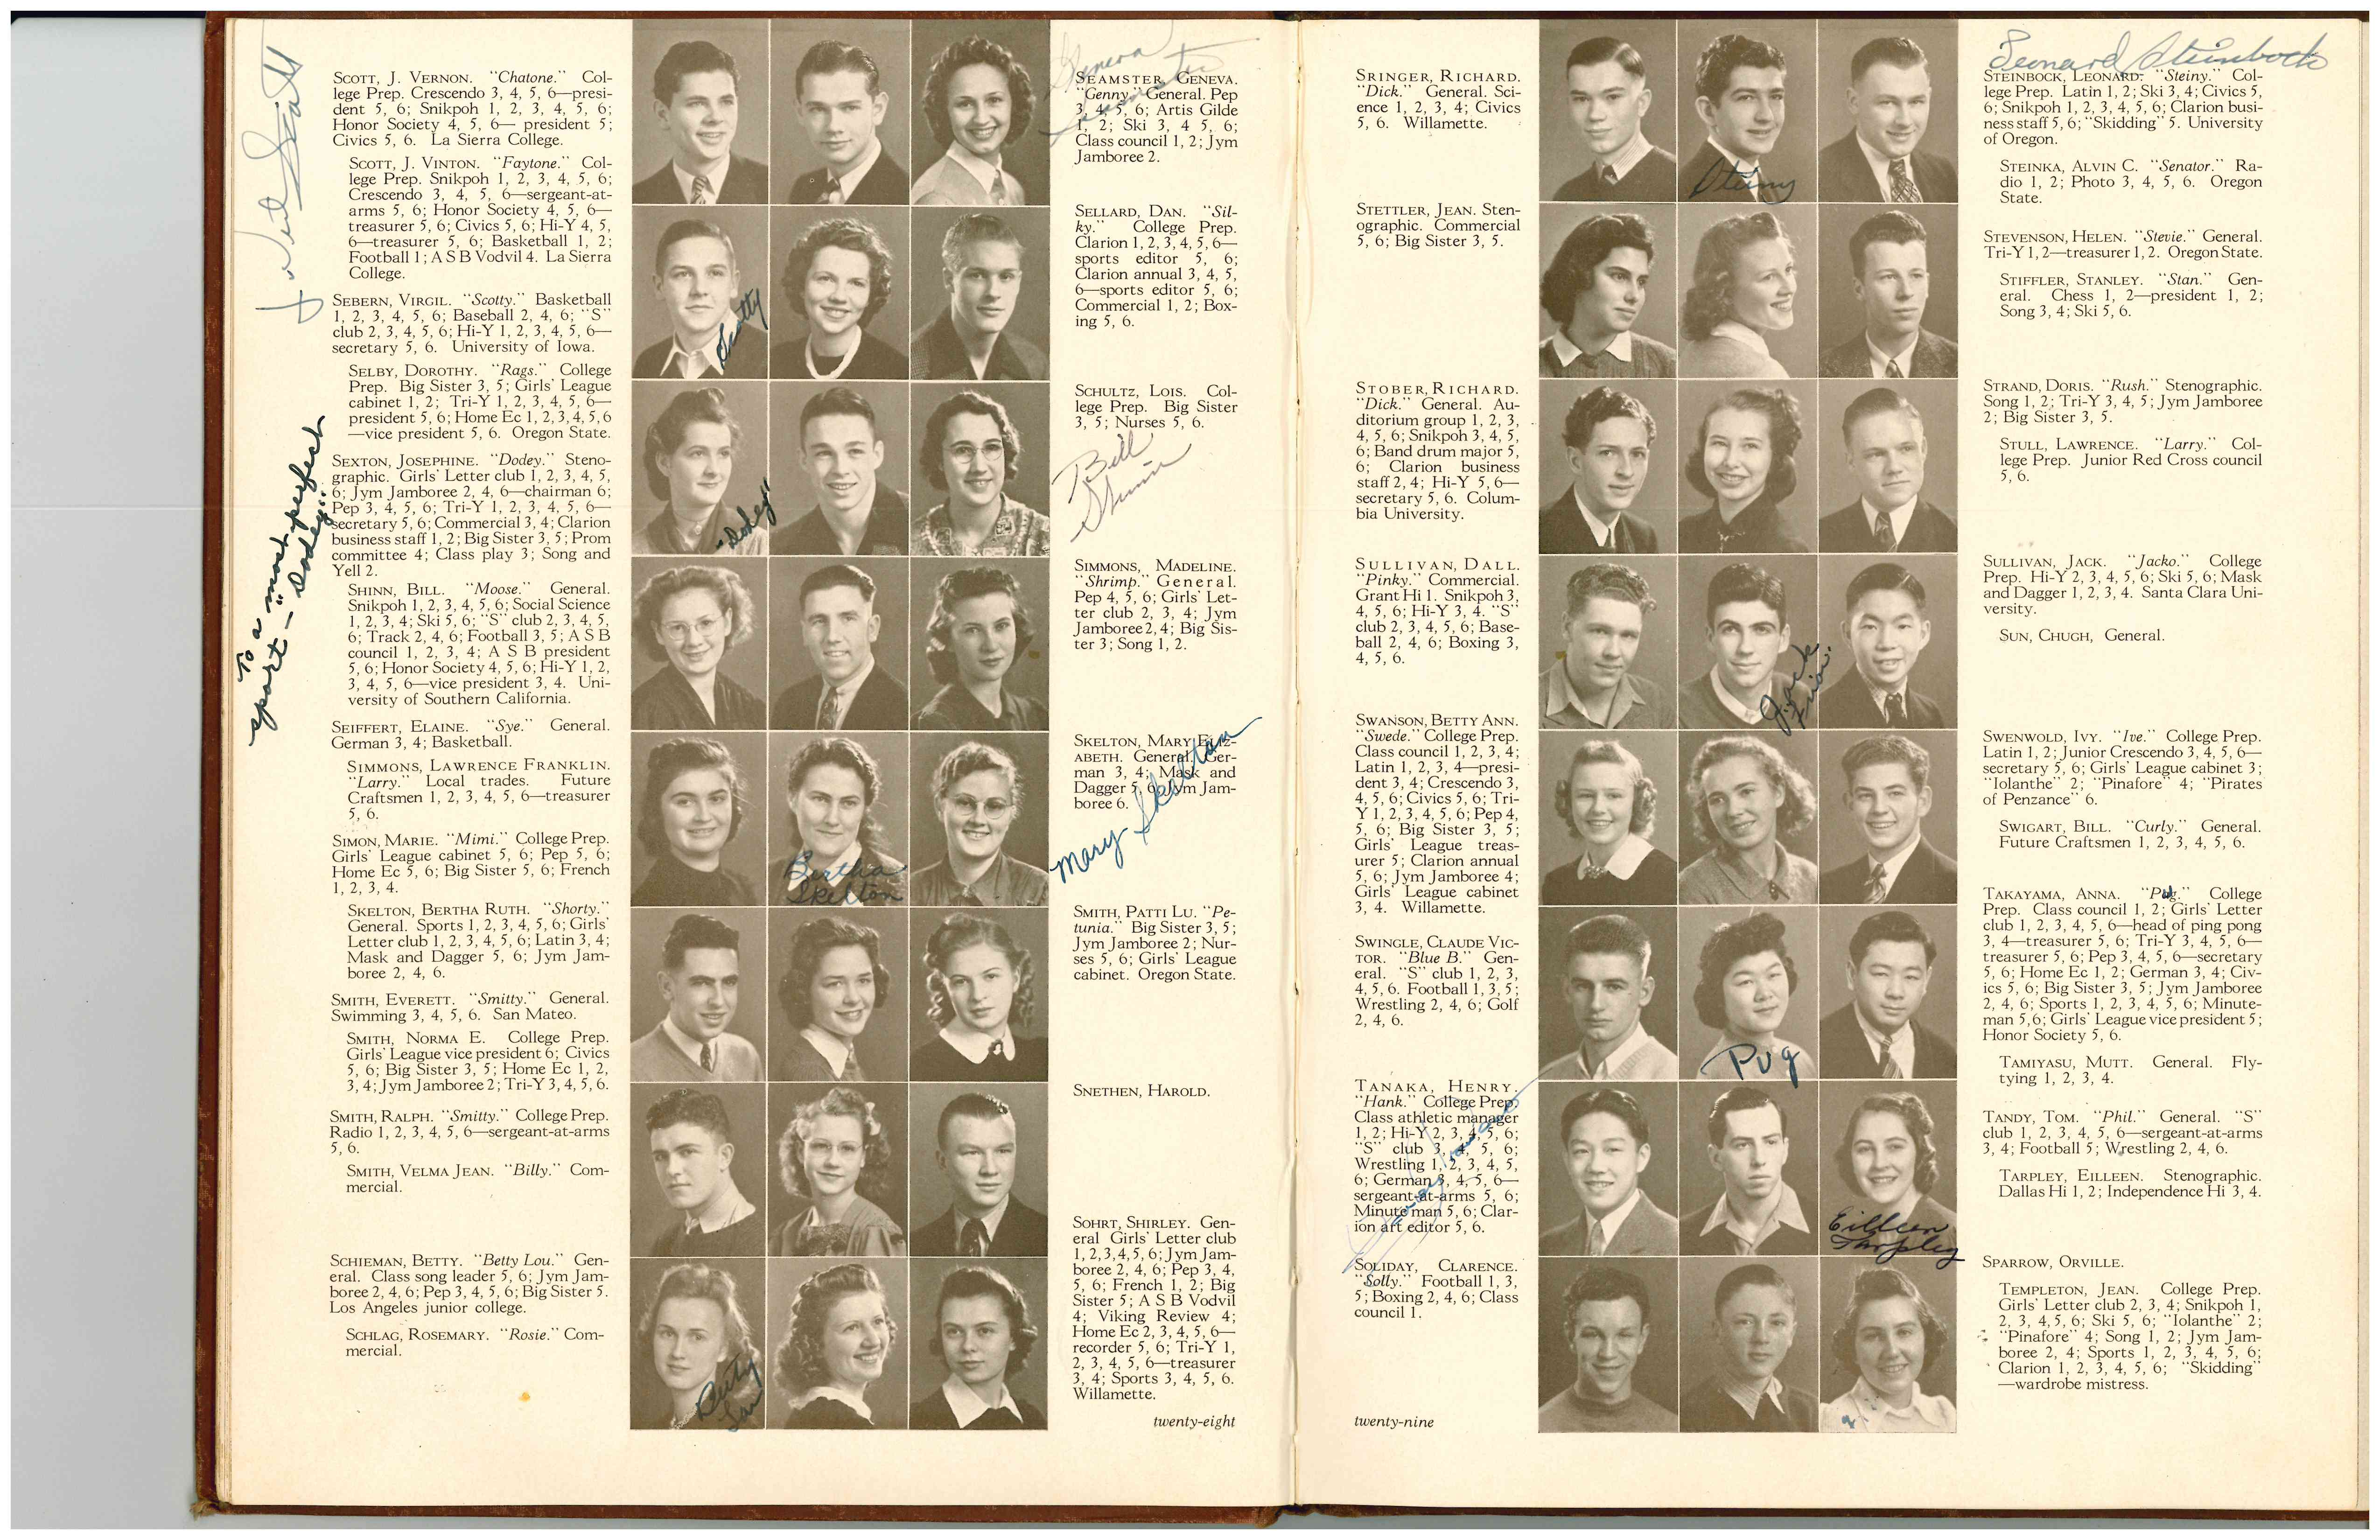 High School Yearbook Photo for Henry Tanaka, 1940.  WHC Collections X2011.001.0155.